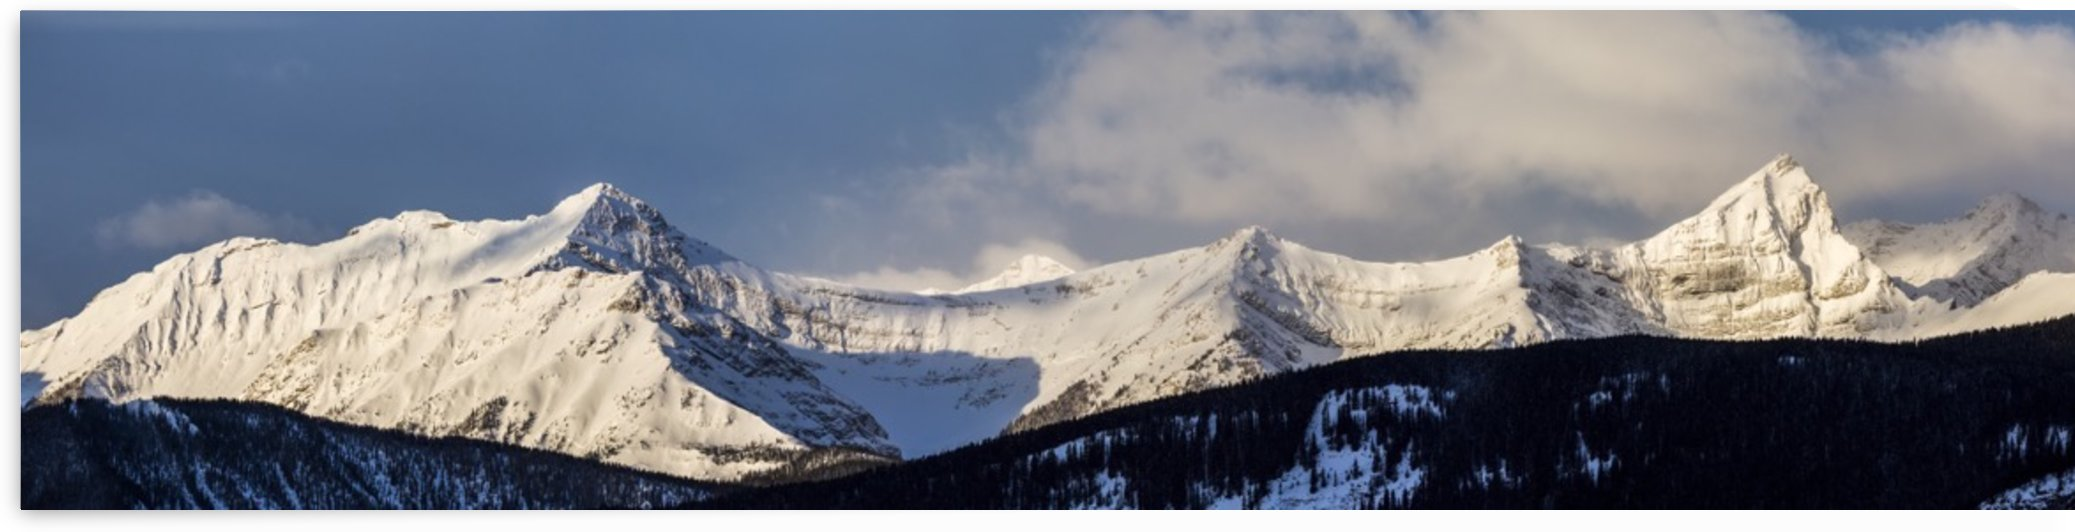 Panorama of snow covered mountains with early morning light, silhouetted forest in the foreground, blue sky and clouds; Kananaskis Country, Alberta, Canada by PacificStock